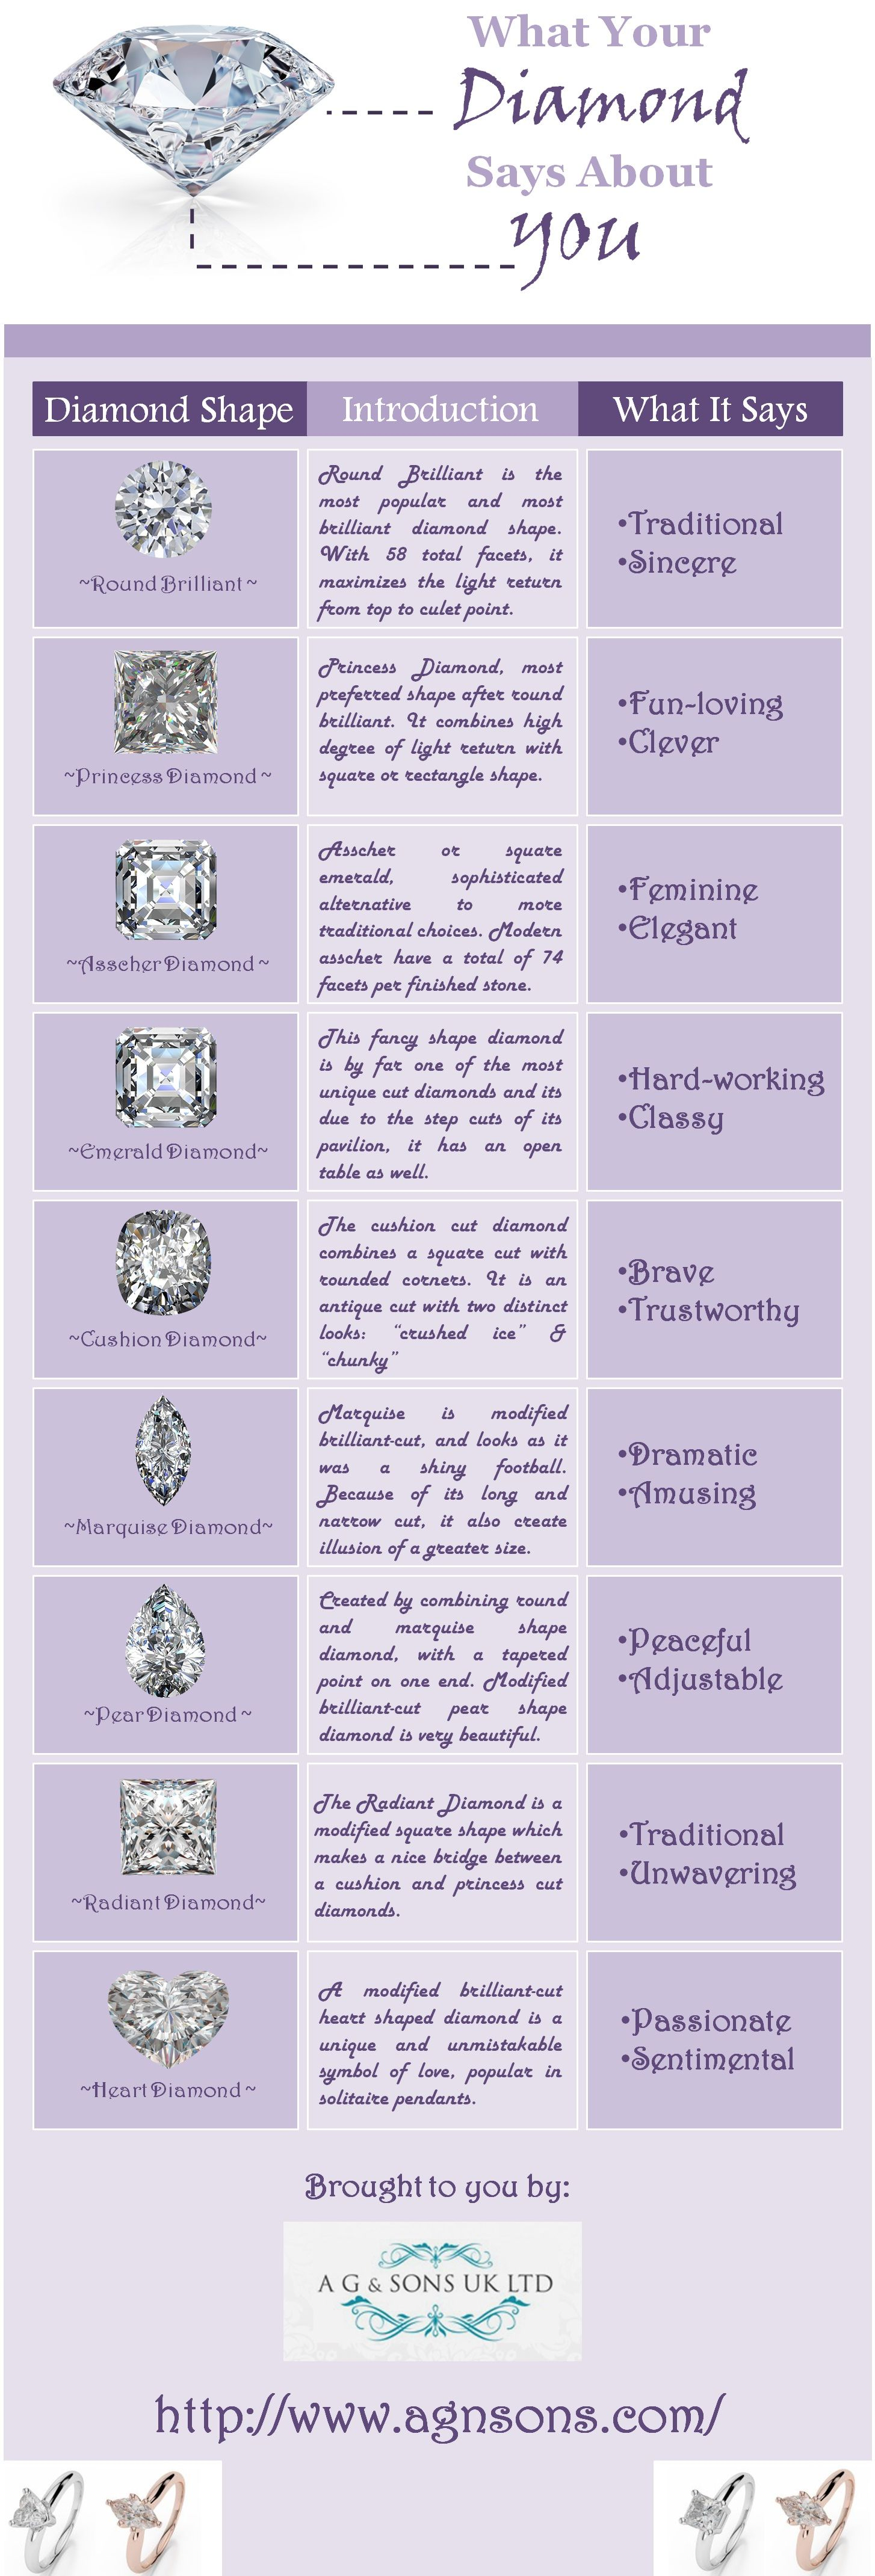 What Your Diamond Says About You Infographic Place